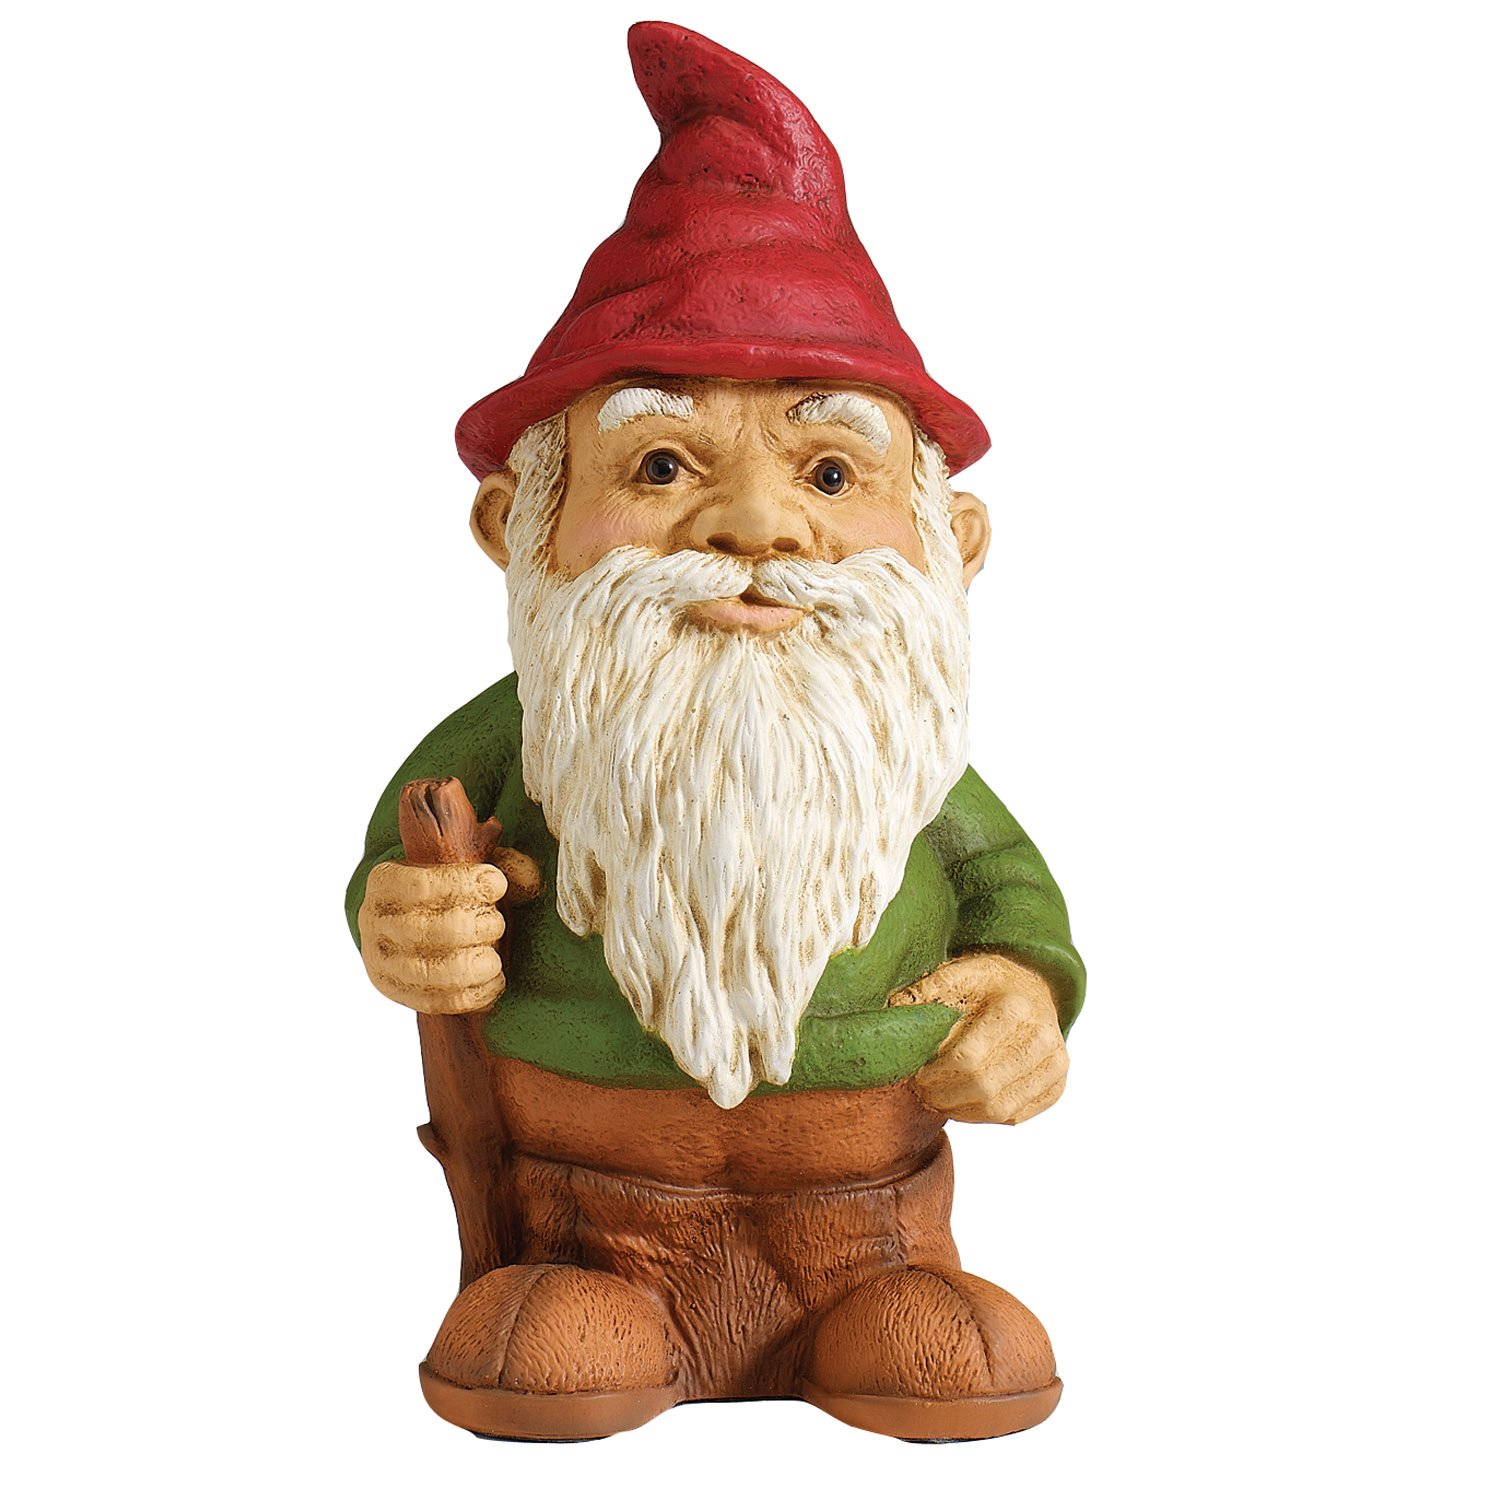 Sculptural Gardens Standing Garden Gnome Statuary by Sculptural Gardens by Heritage Farms